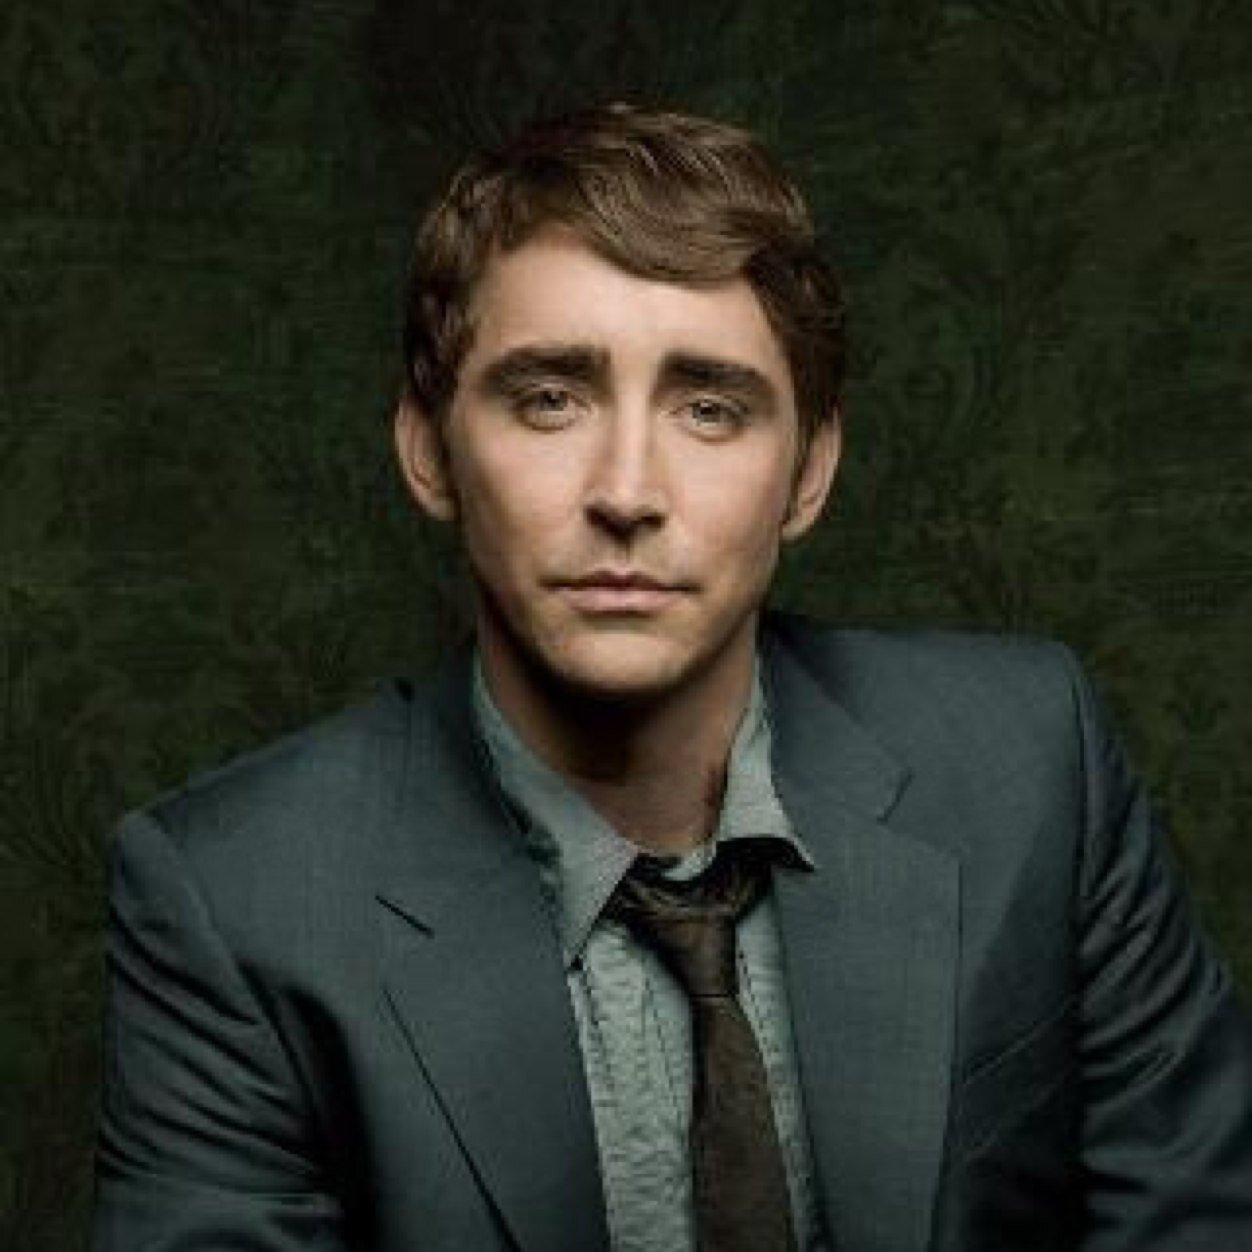 lee pace 2016lee pace instagram, lee pace gif, lee pace 2016, lee pace vk, lee pace 2017, lee pace height, lee pace wiki, lee pace hobbit, lee pace photoshoot, lee pace кинопоиск, lee pace interview, lee pace movies, lee pace личная жизнь, lee pace news, lee pace weibo, lee pace gif tumblr, lee pace garrett, lee pace beard, lee pace gif hunt, lee pace imdb